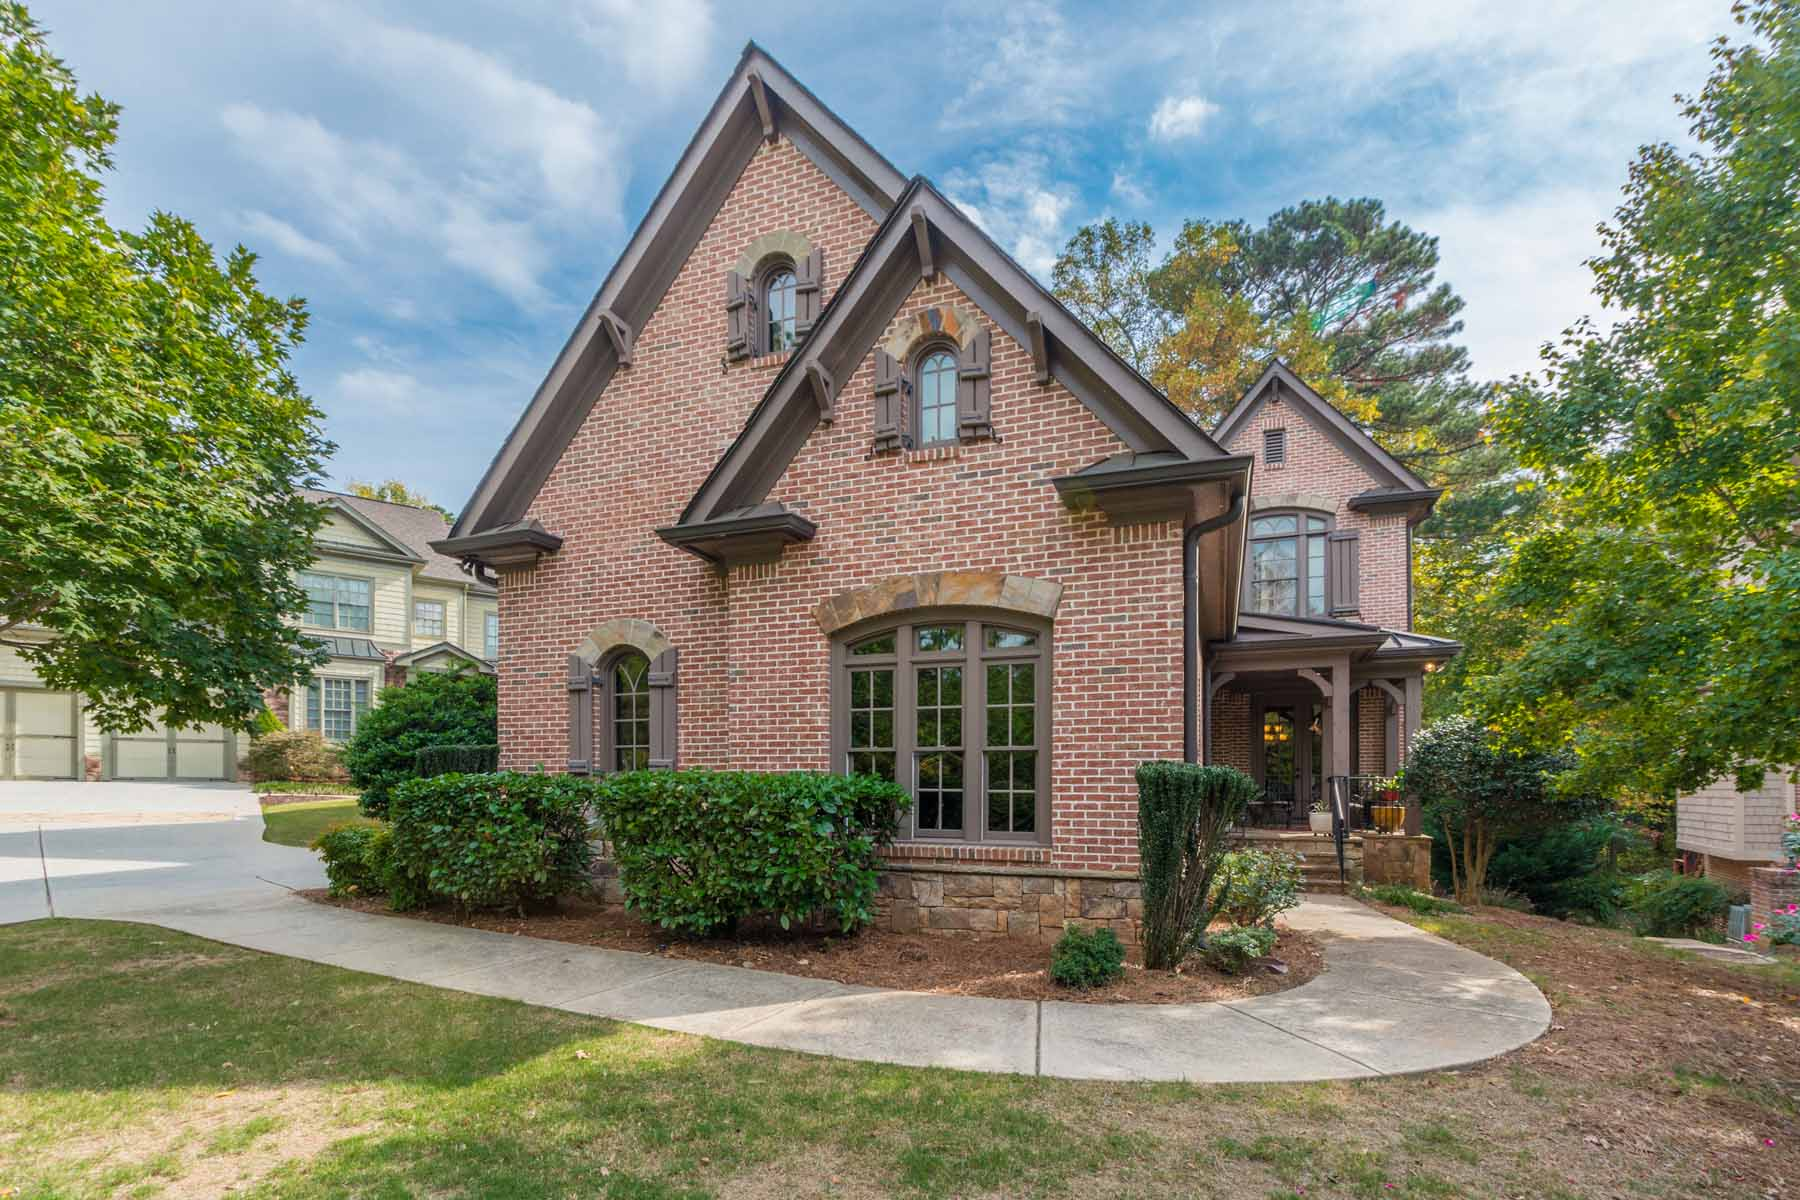 一戸建て のために 売買 アット Stunning Brick Home In Windward On Golf Course Lot 6303 Windward Parkway Alpharetta, ジョージア, 30005 アメリカ合衆国